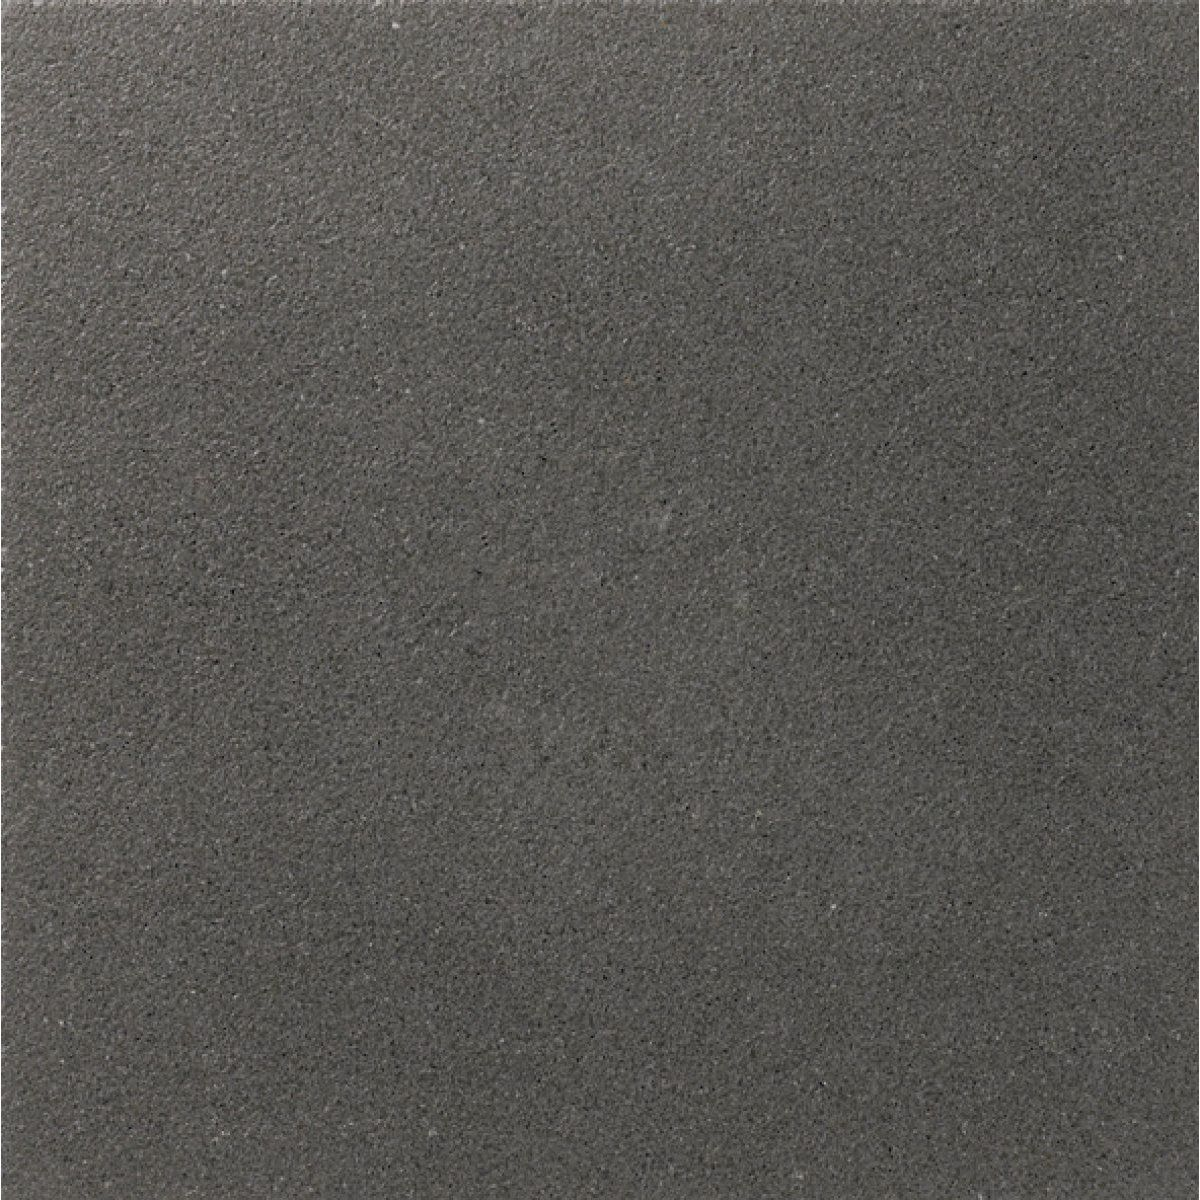 Dalle b ton romantic carbono marlux 60x60 cm p 40 mm for Dalle exterieur 60x60